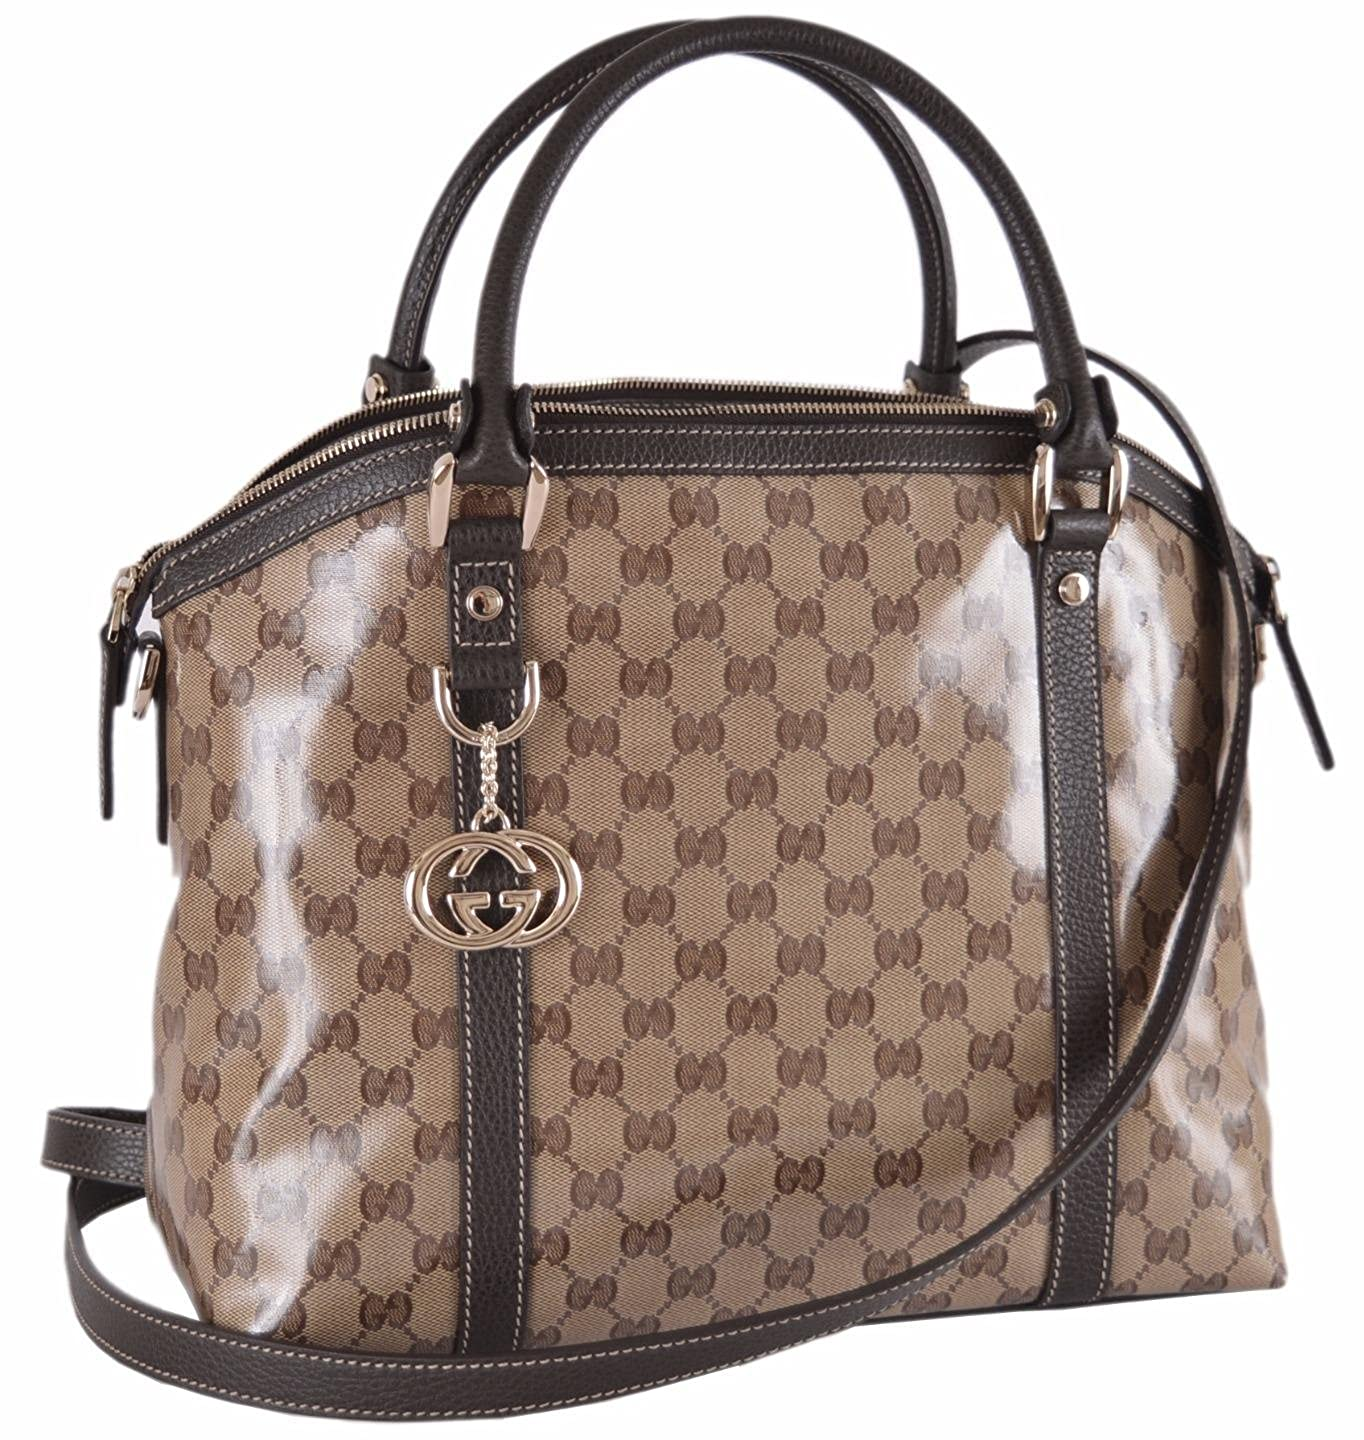 Gucci Leather Handbags For Women